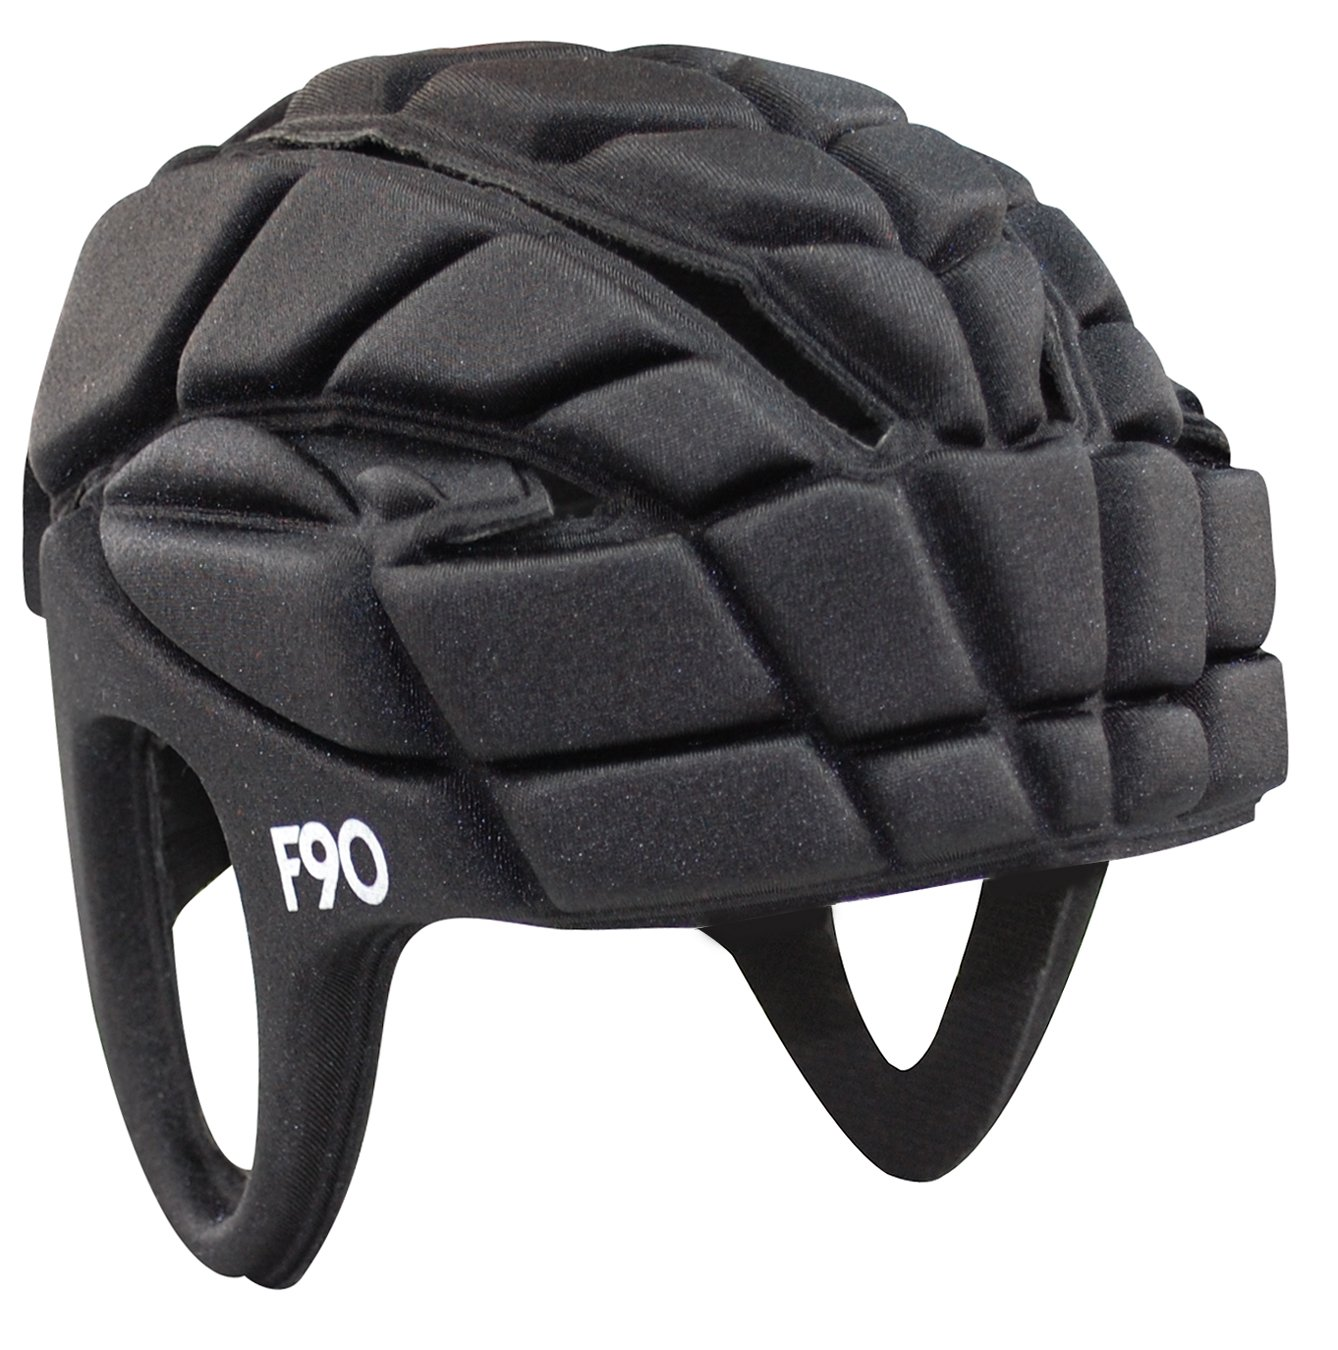 Full90 Sports FN1 Performance Headgear, Large, Black